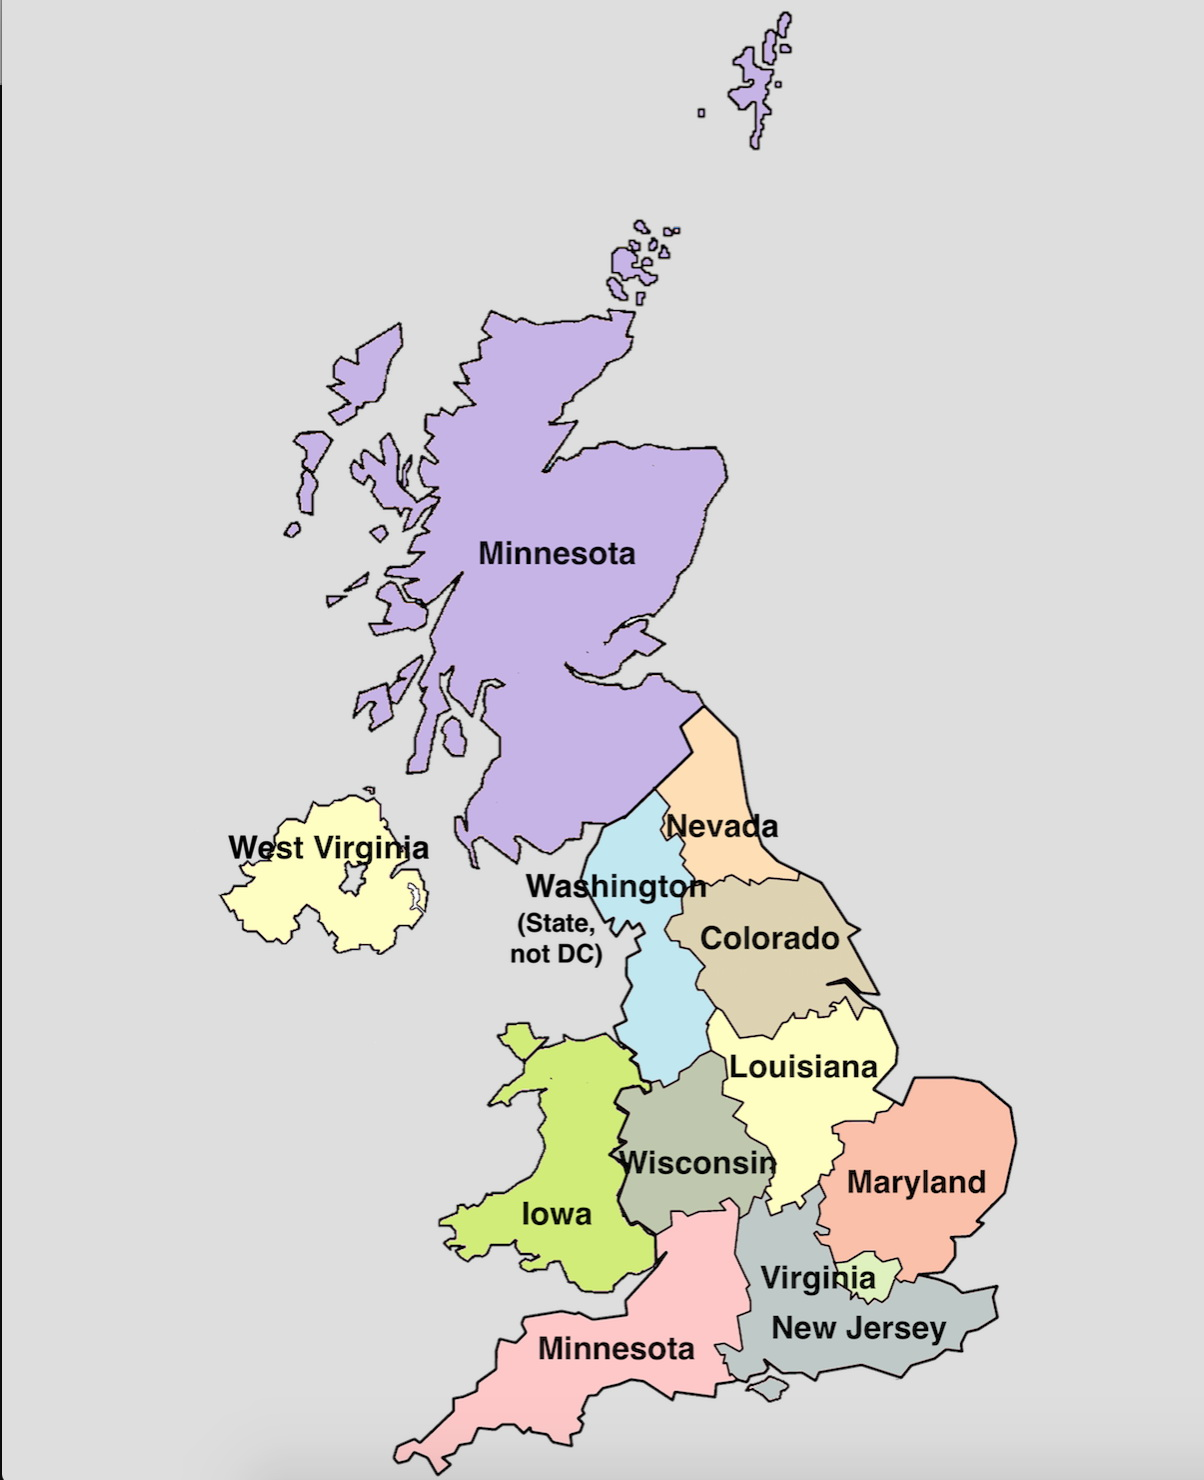 U.S. states populations superimposed in U.K. regions